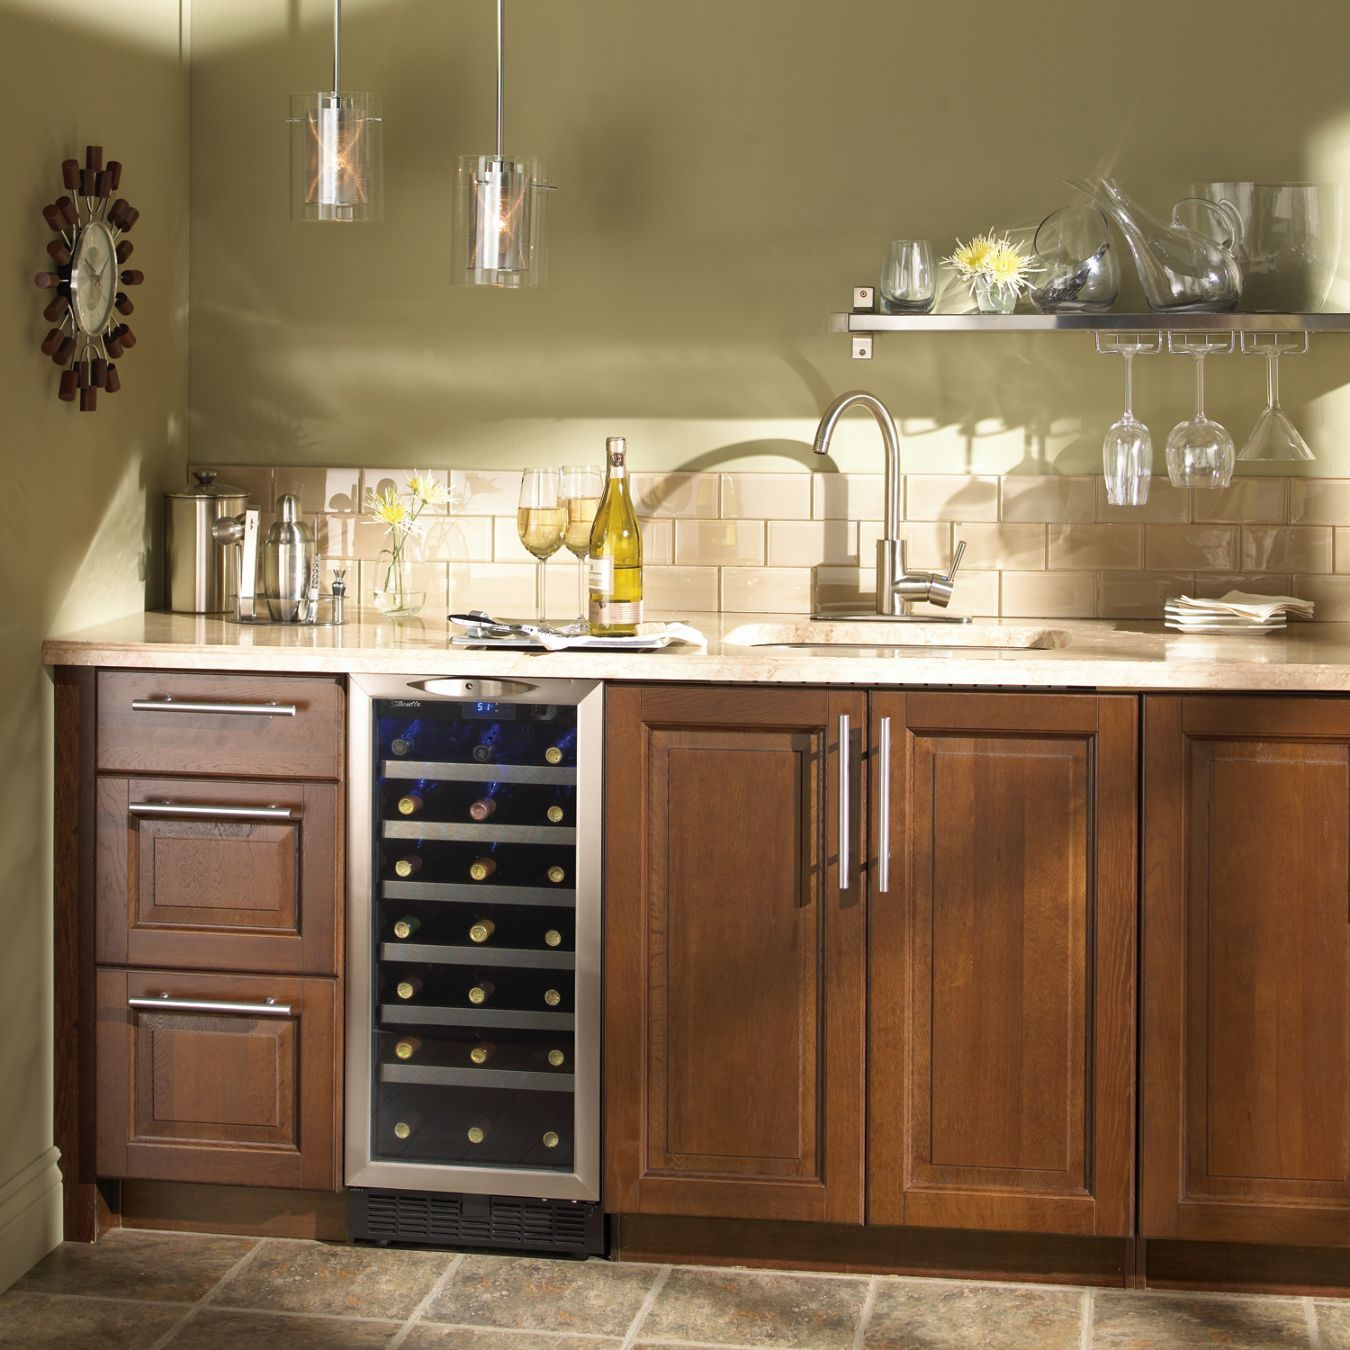 kitchen wine coolers | inch under counter wine cooler ...